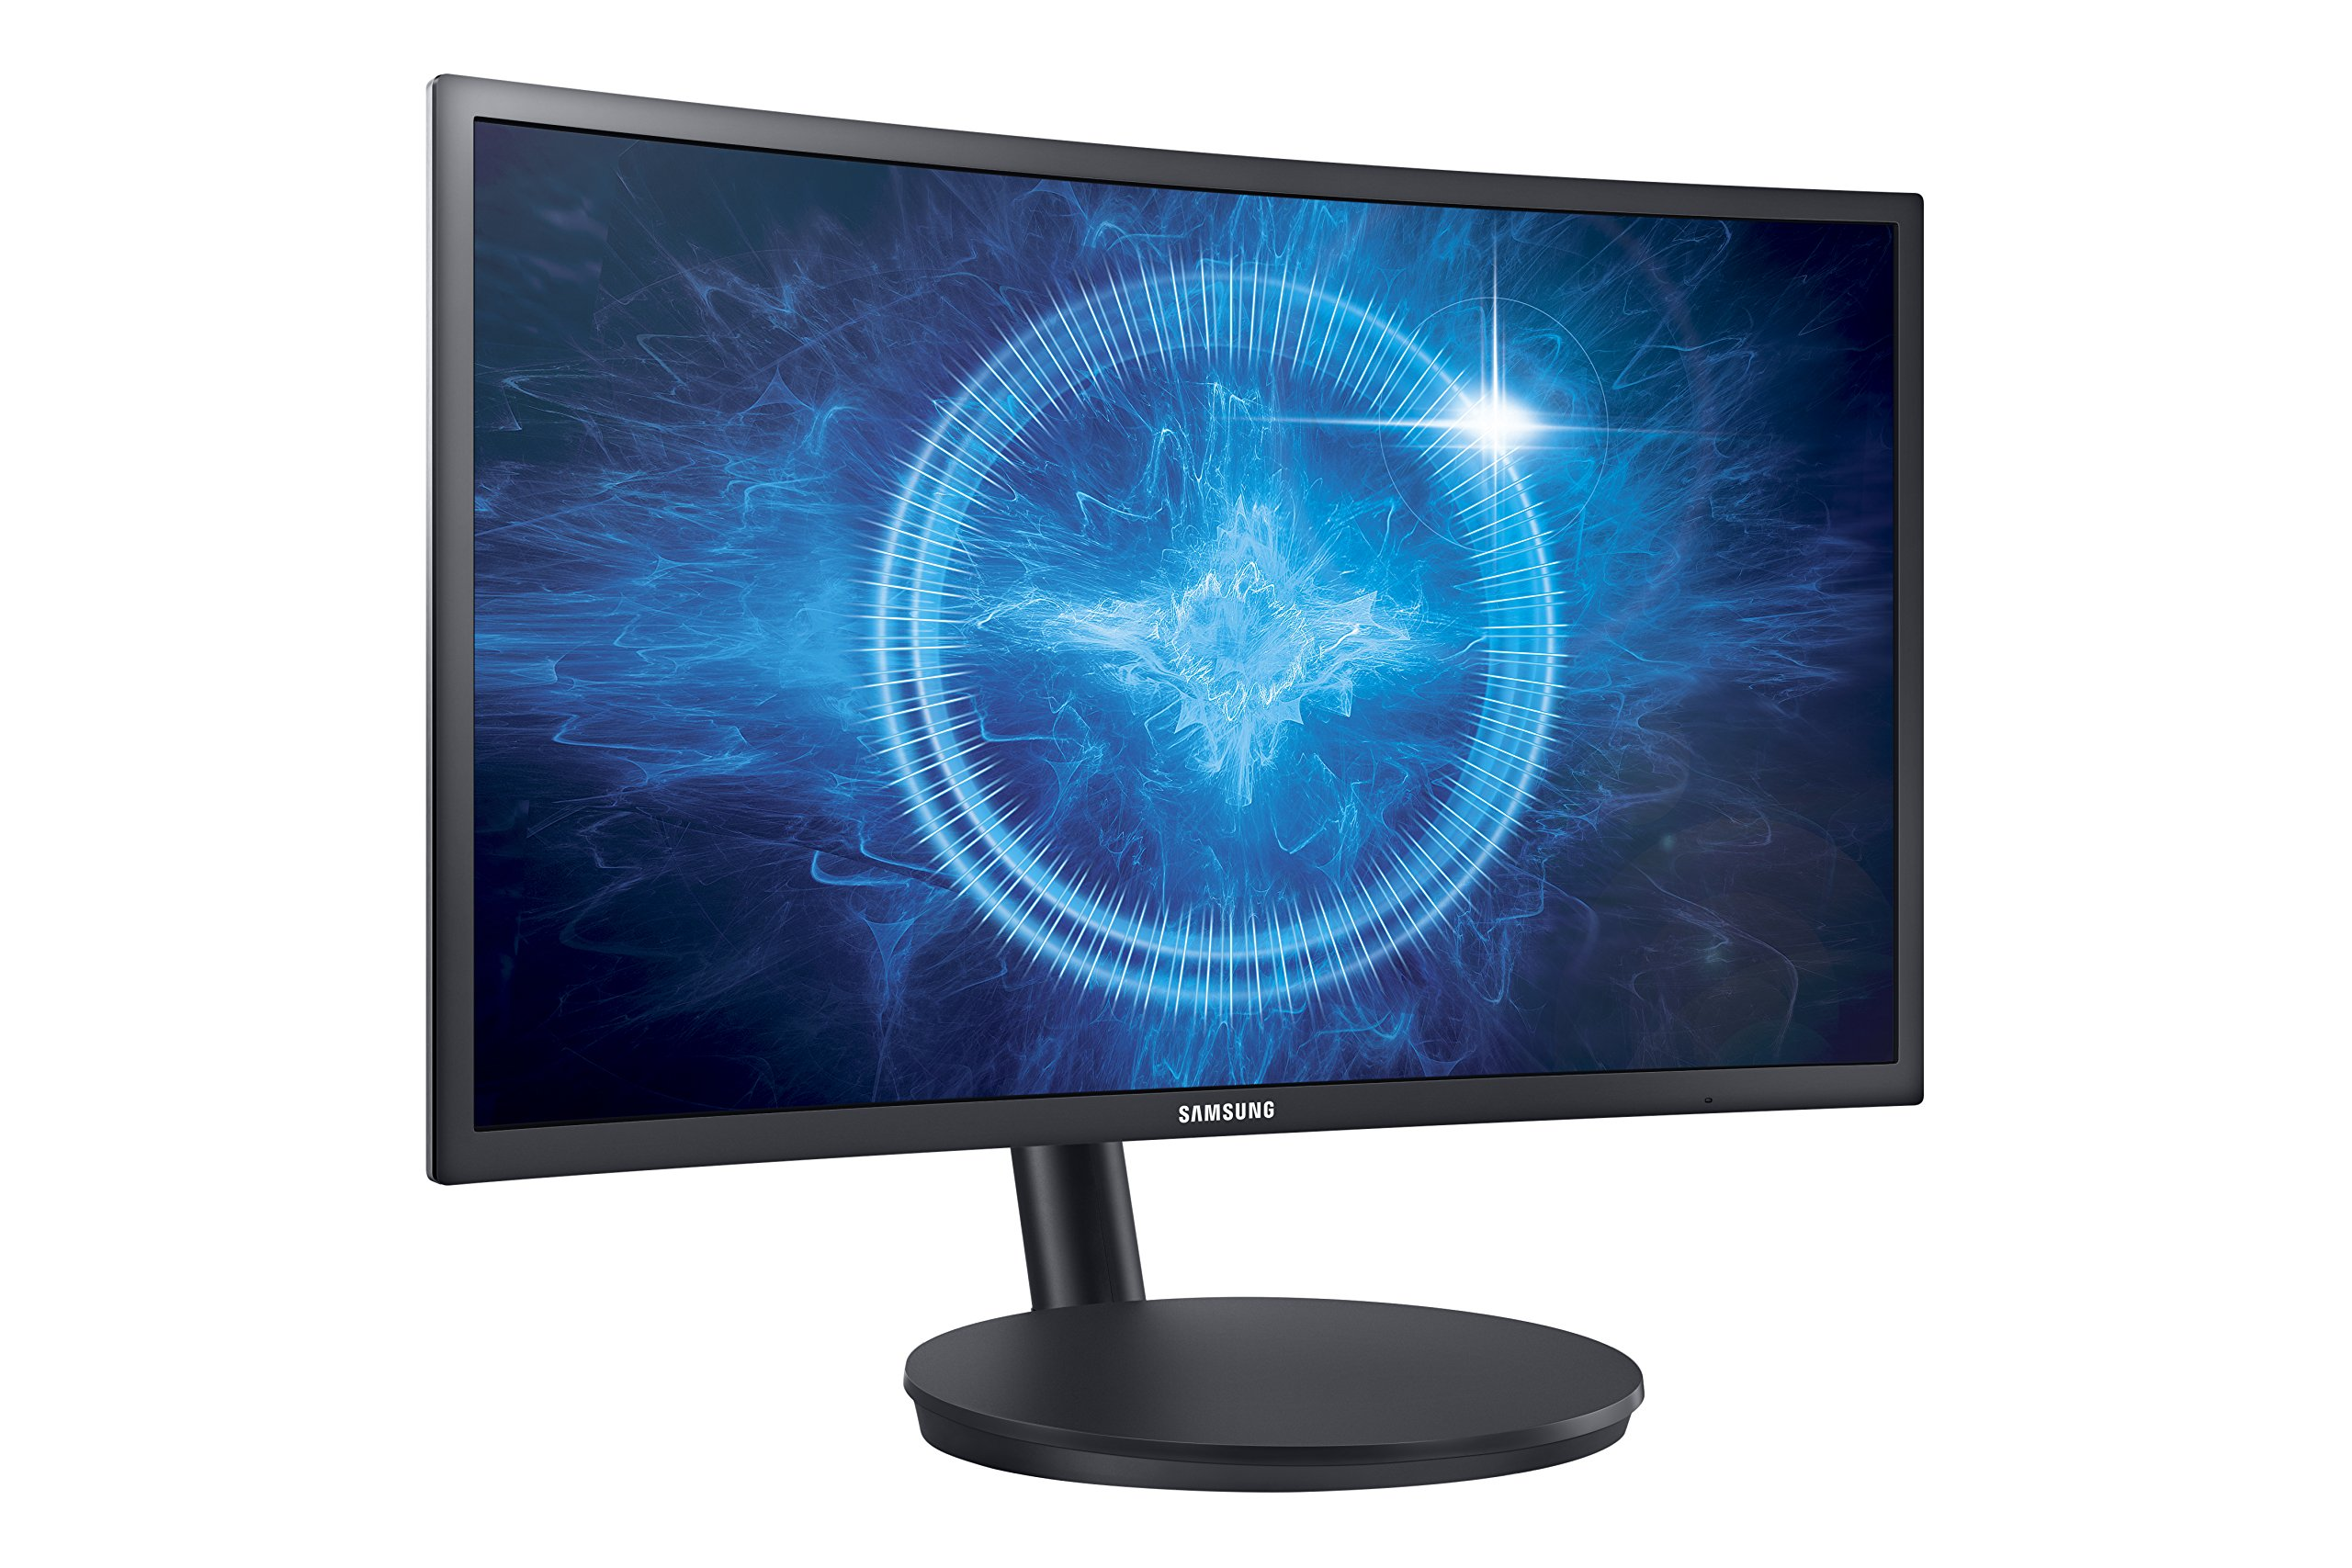 Cheap 27 Monitor Gaming Find Deals On Line At Benq 144hz Flicker Free Inch Xl2720z Get Quotations Samsung Cfg70 Series 1ms Curved C27fg70